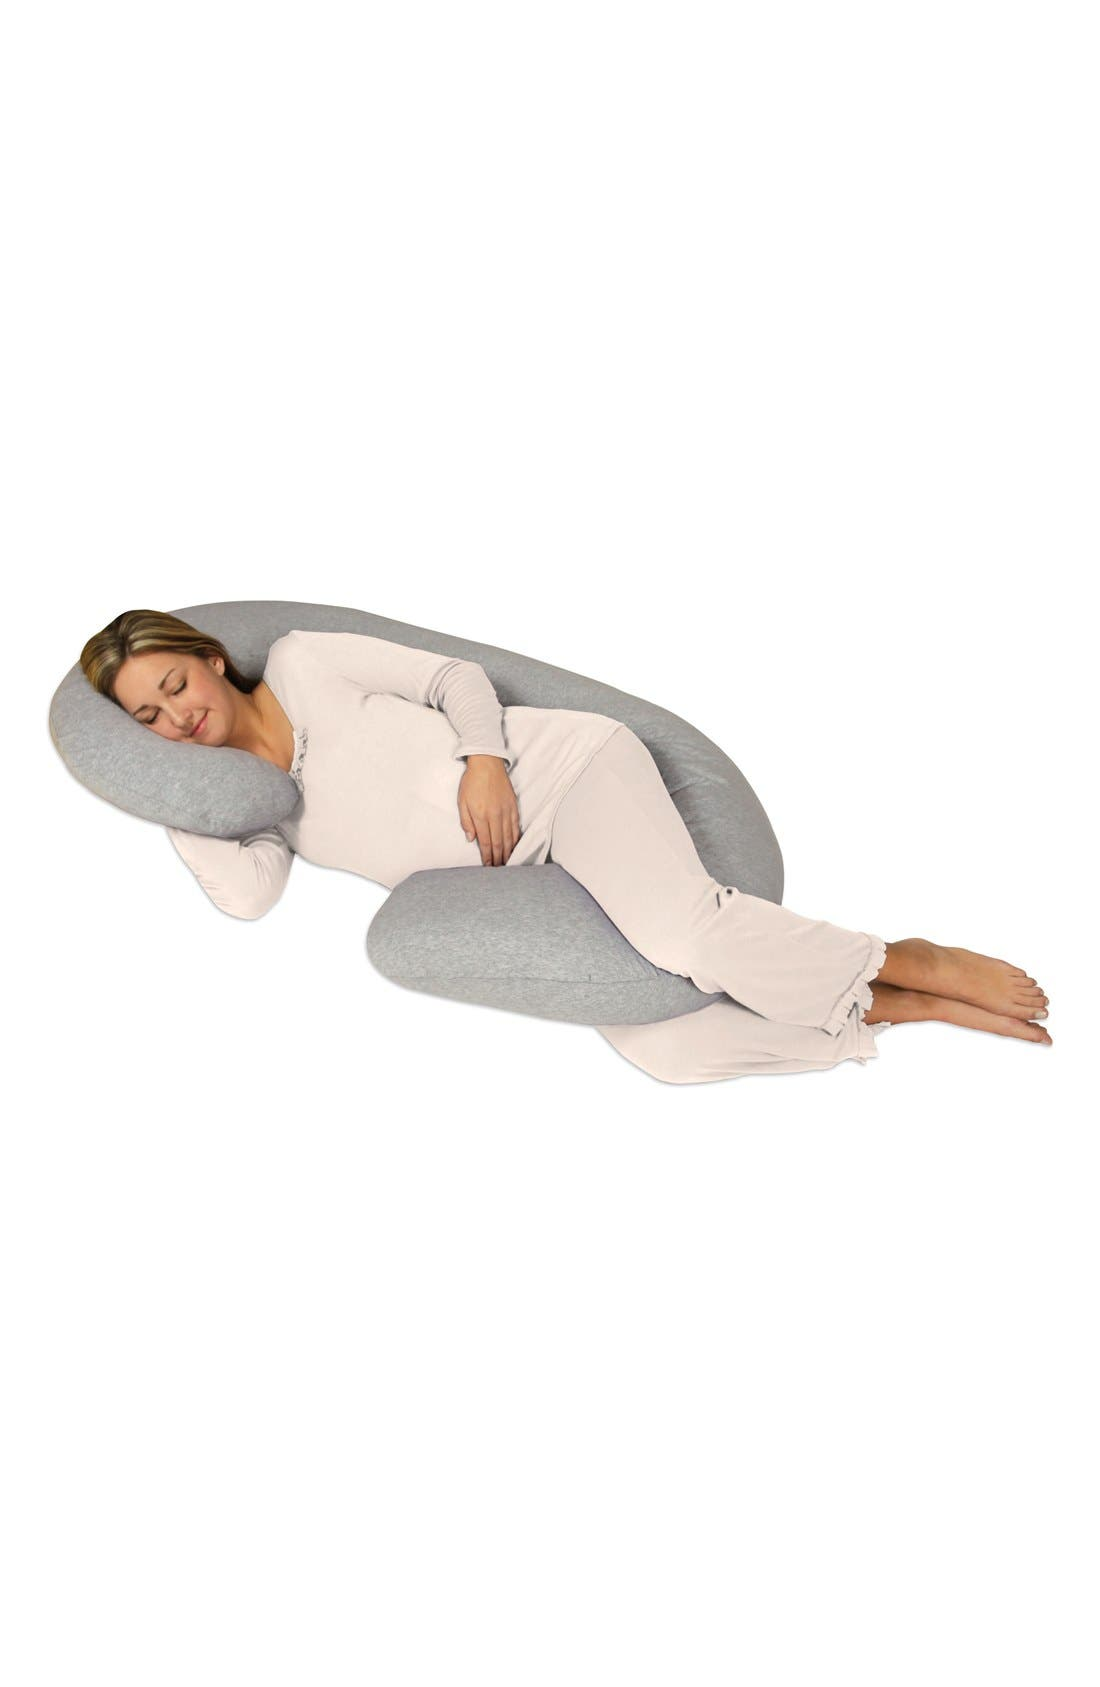 Alternate Image 2  - Leachco Snoogle Chic Full Body Pregnancy Support Pillow with Jersey Cover